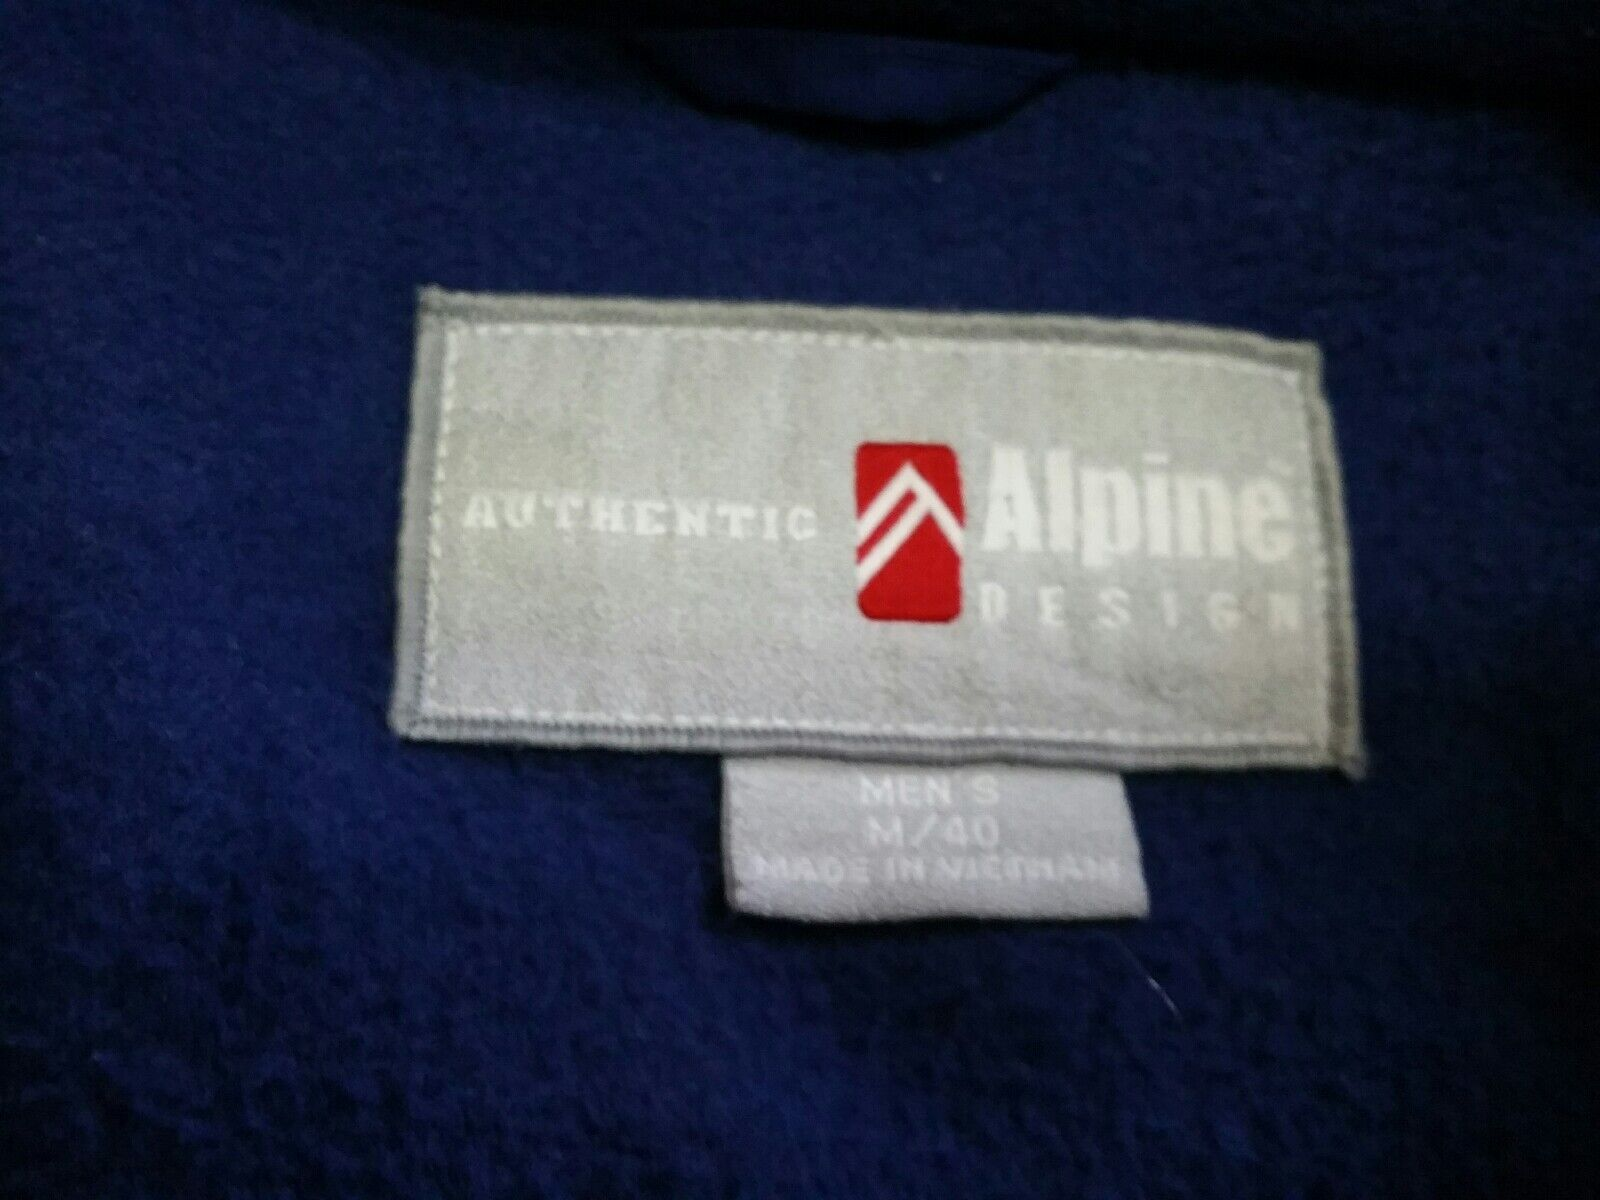 AUTHENTIC SIZE: ALPINE DESIGN SKING OUTERWEAR WINTER COAT SIZE: AUTHENTIC Herren M/40 25d399